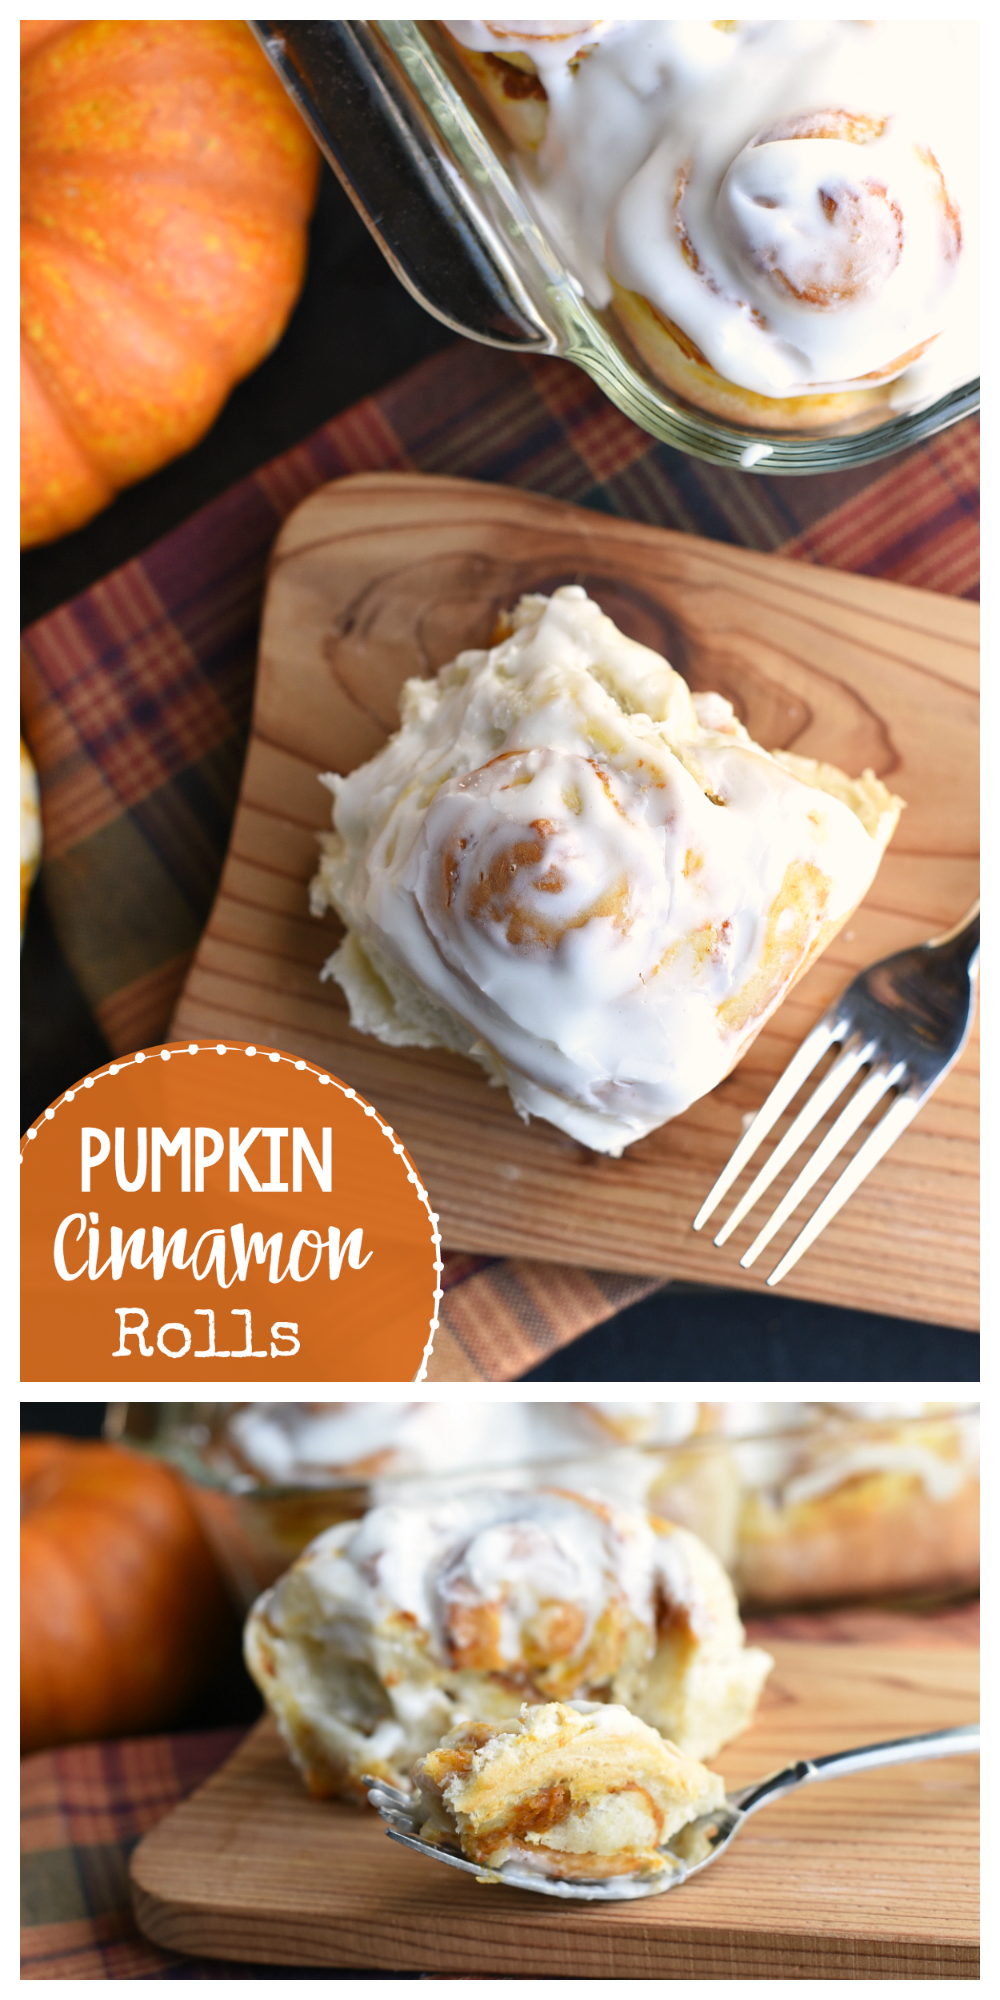 These easy pumpkin cinnamon rolls are made using Rhodes Bake N Serv rolls, meaning they are easy to make and they taste amazing! Pumpkin spice inside a yummy roll and topped with cream cheese frosting. You're going to love them! #pumpkin #bake #thanksgiving #food #recipes